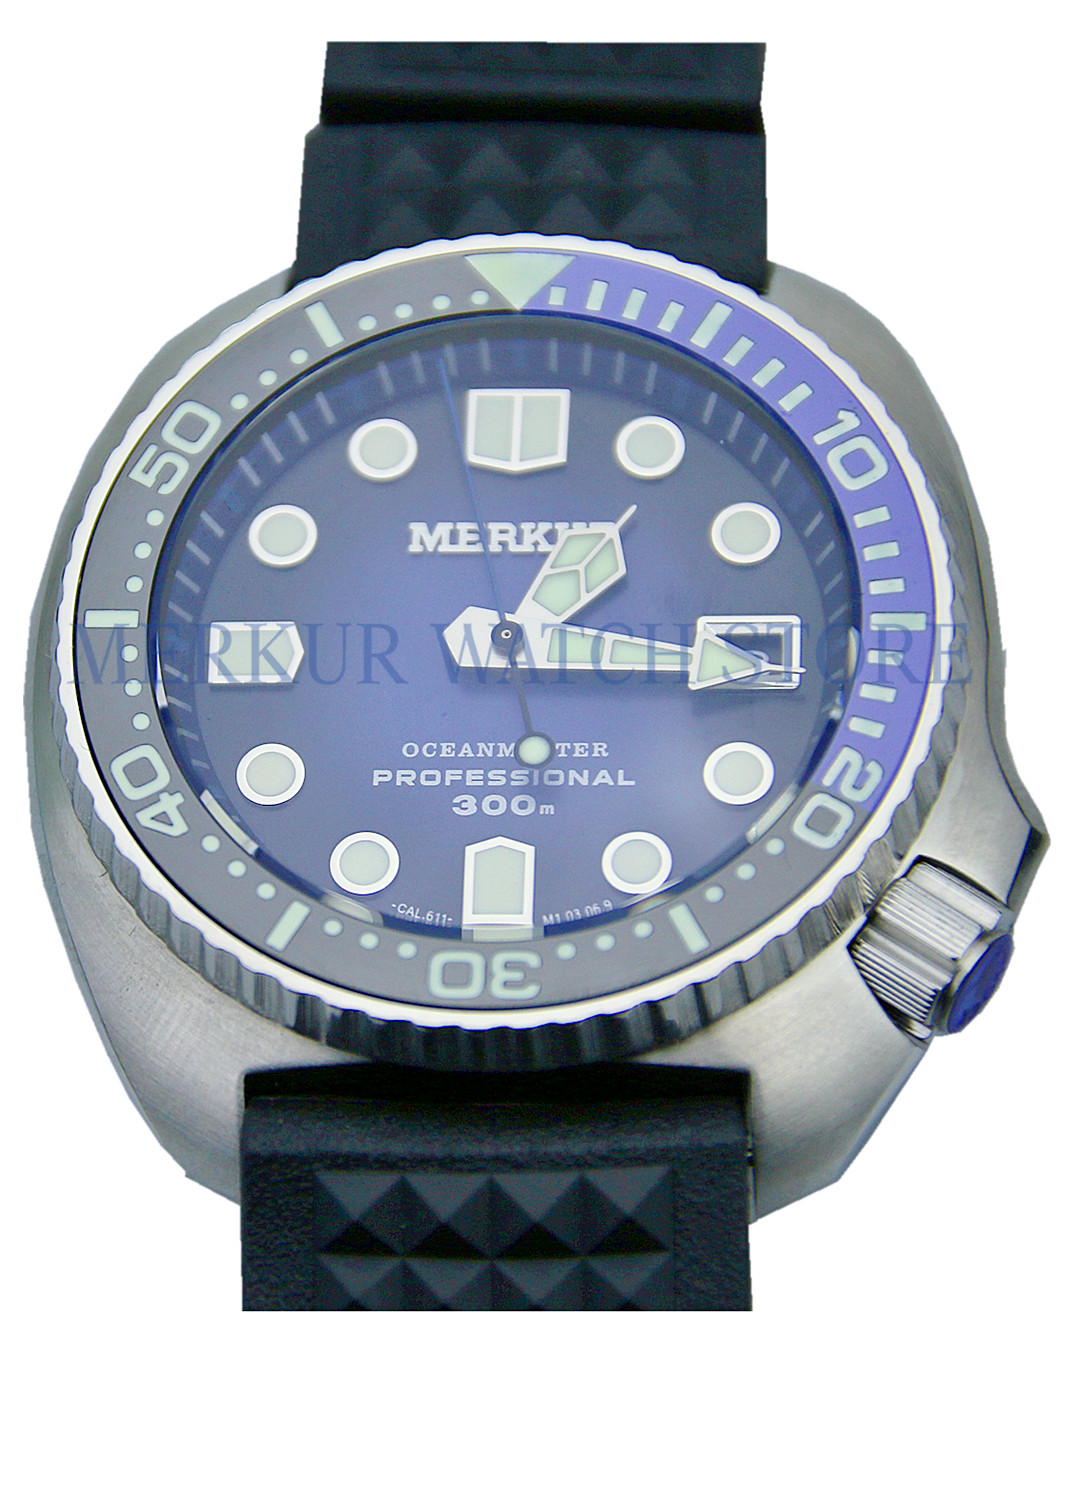 Merkur Mens Vintage 6105 TURTLE Automatic Wrist Watch Pro Divers Sapphire Ceramic 300M